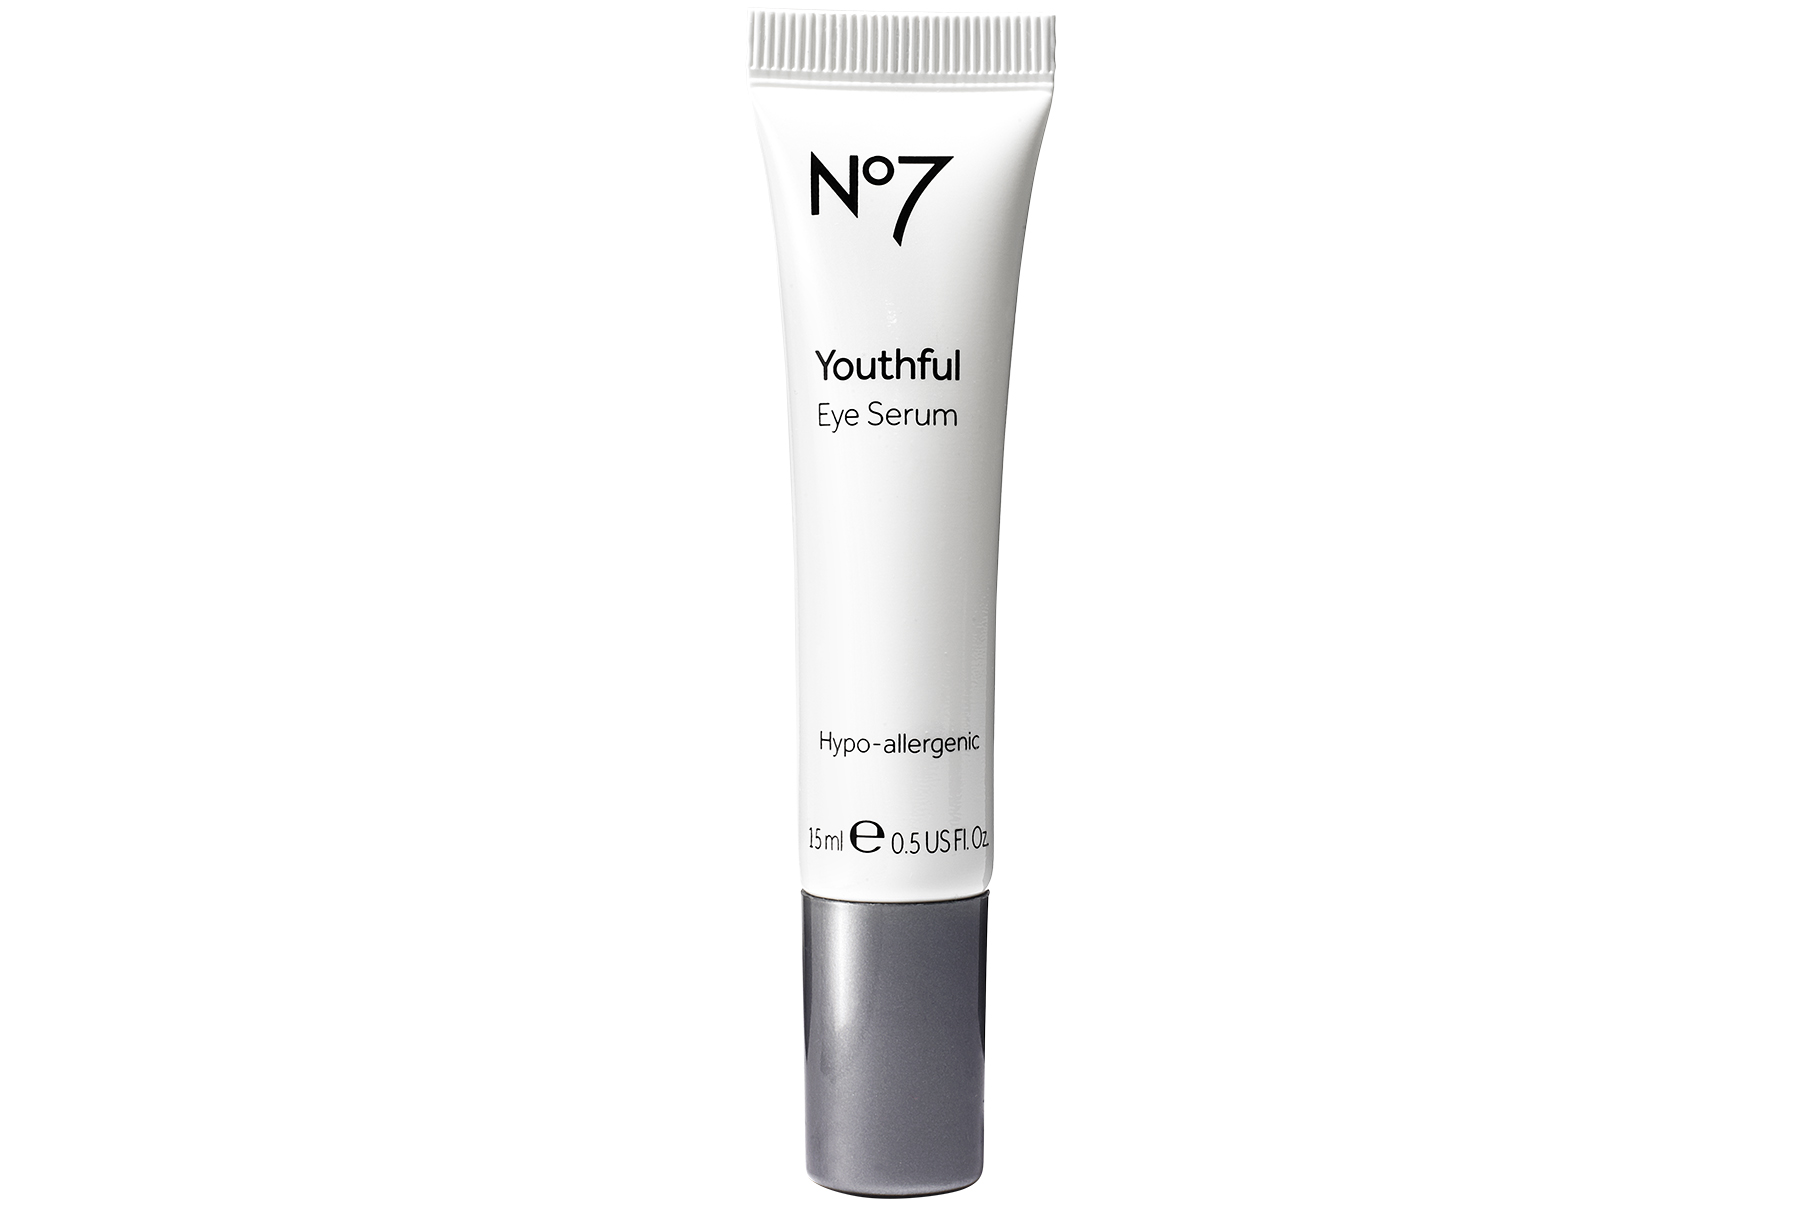 No7 Youthful Eye Serum